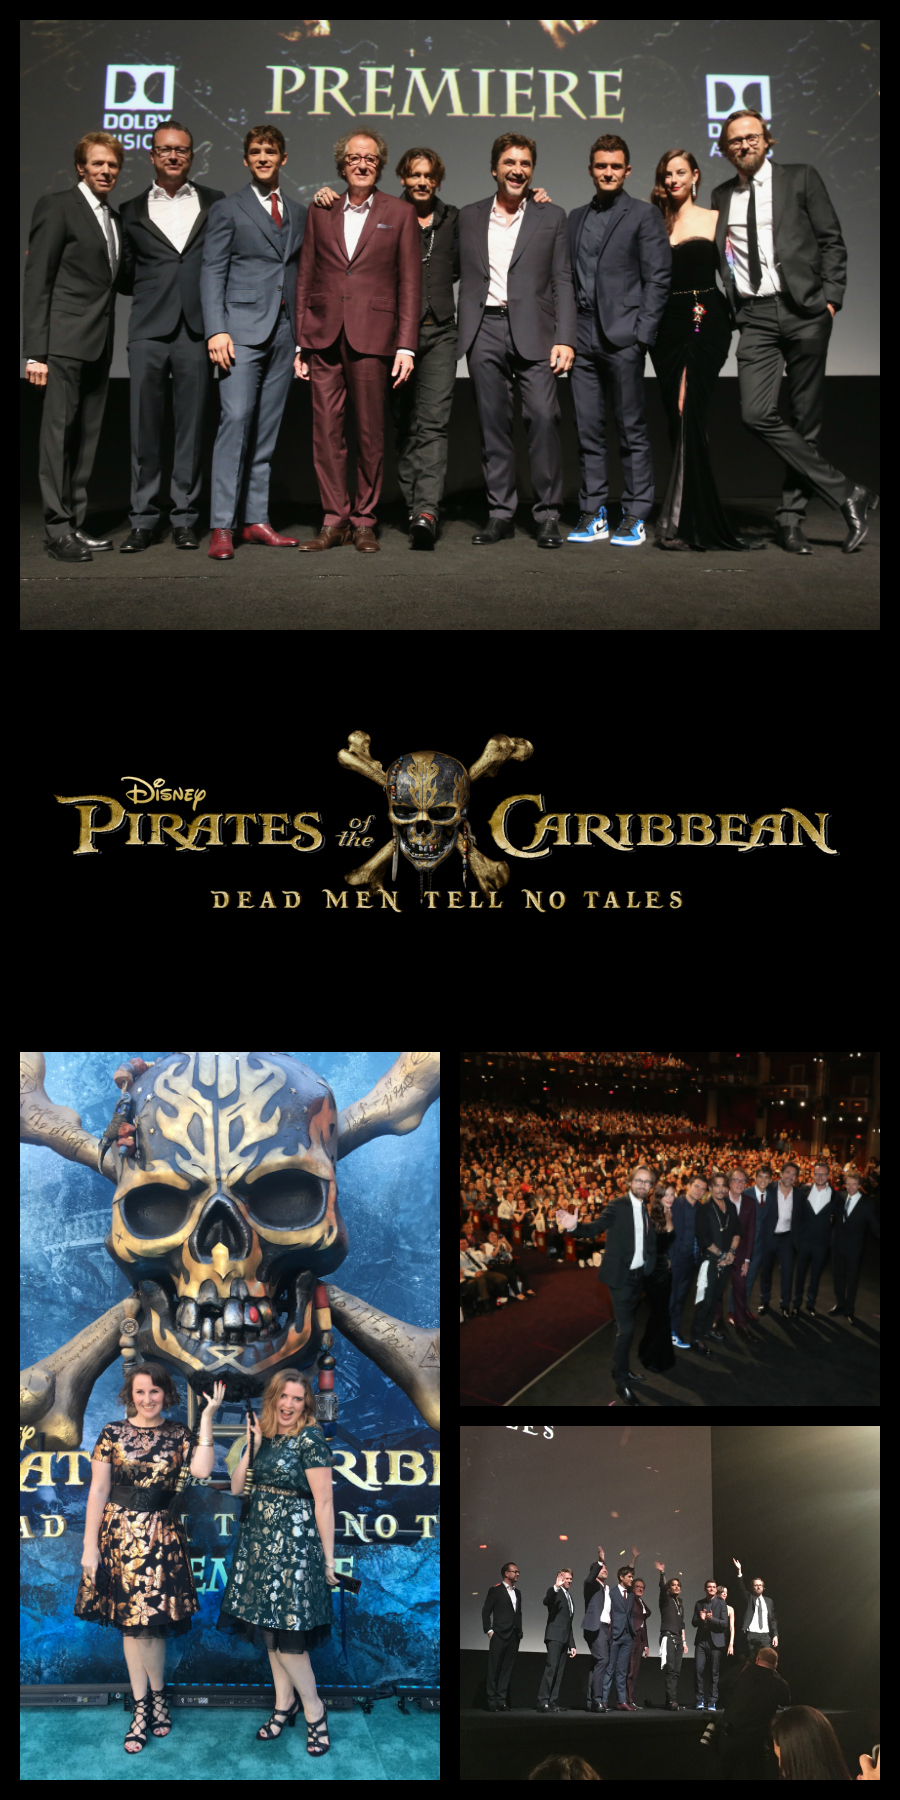 Pirates of the Caribbean: Dead Men Tell No Tales Hollywood premiere